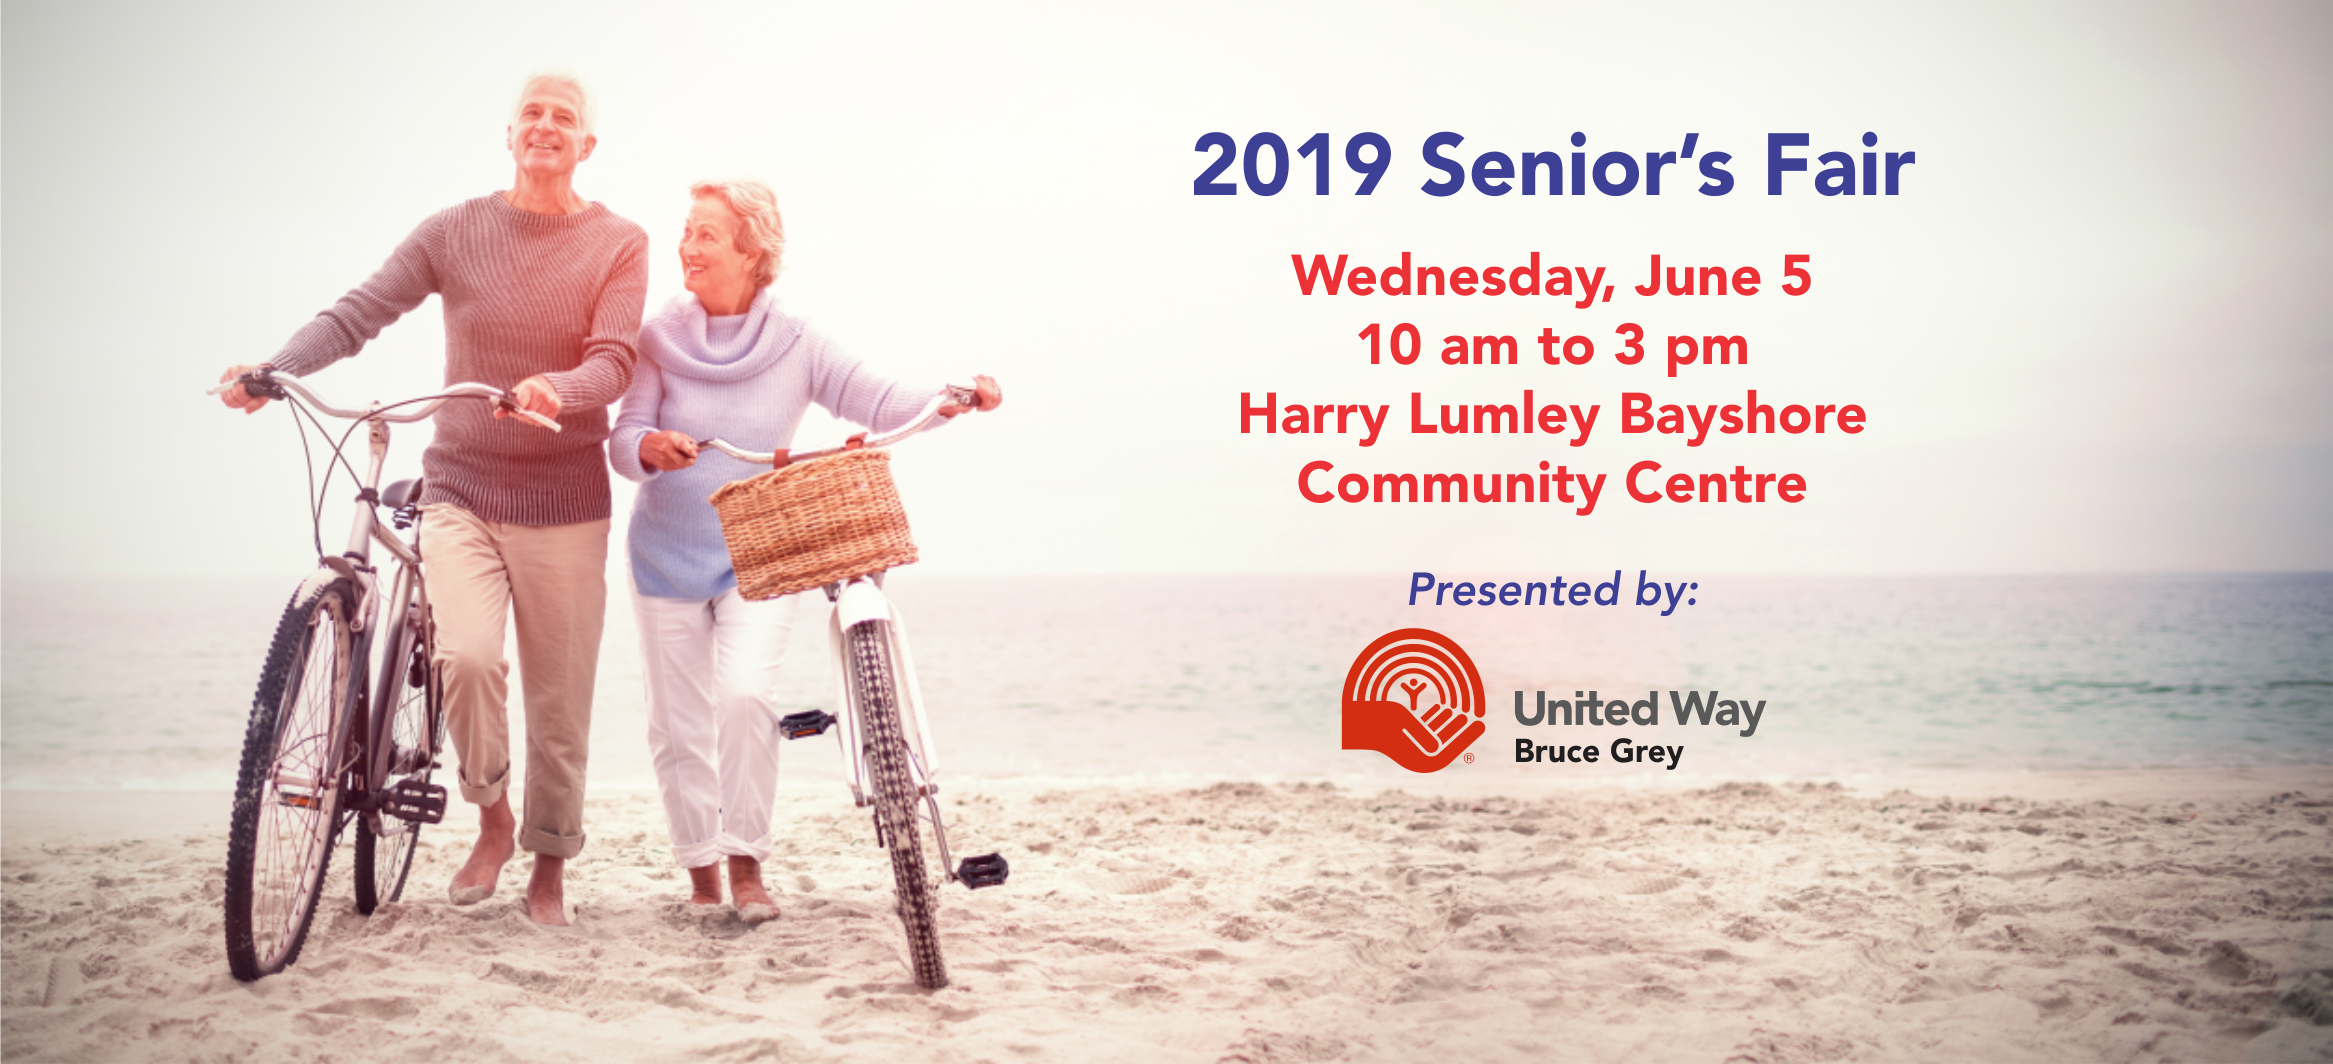 Please join us for our 2019 Senior's Fair